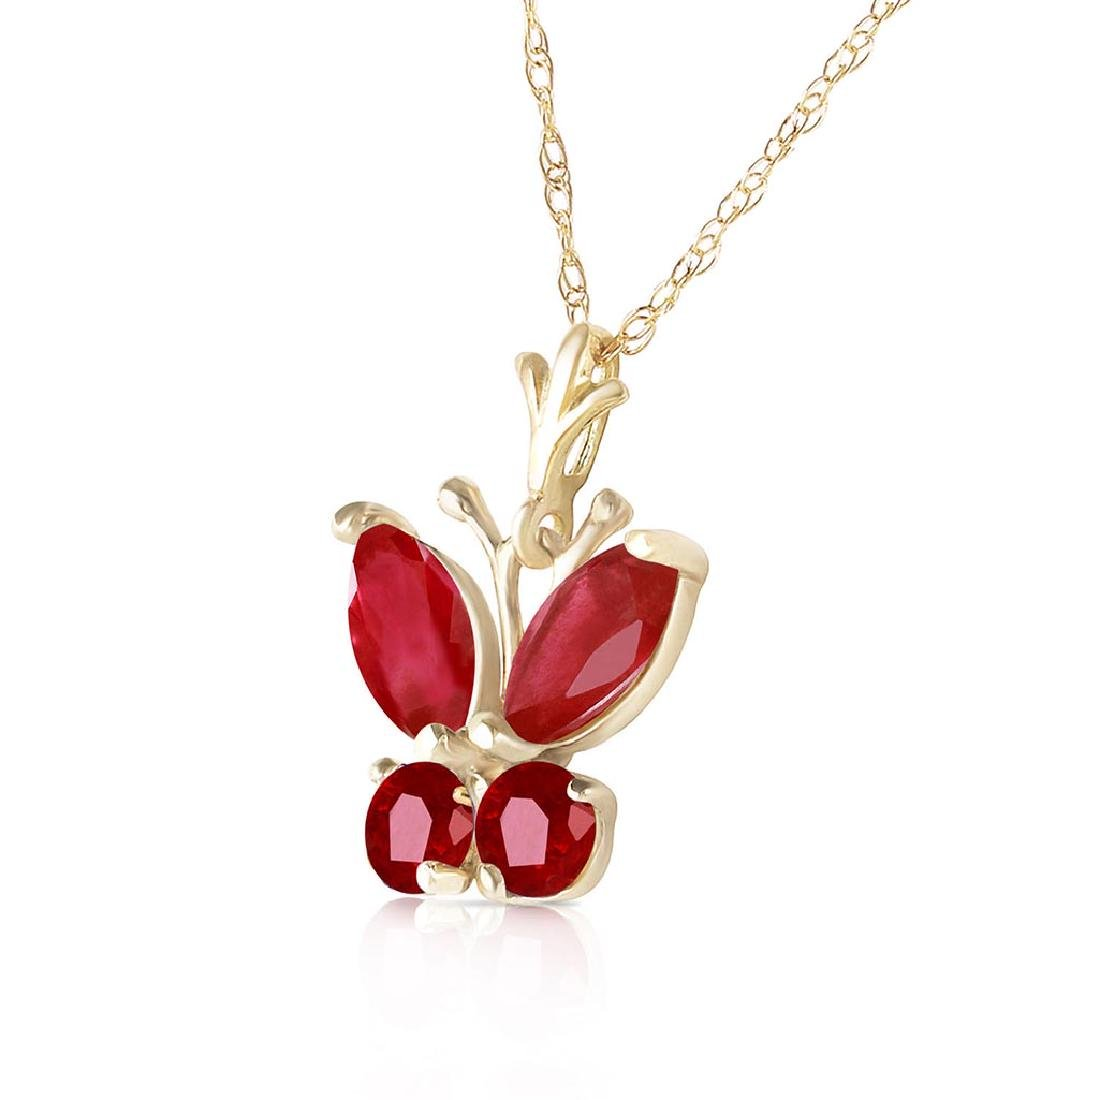 0.6 Carat 14K Solid Gold Butterfly Necklace Natural Rub - 2